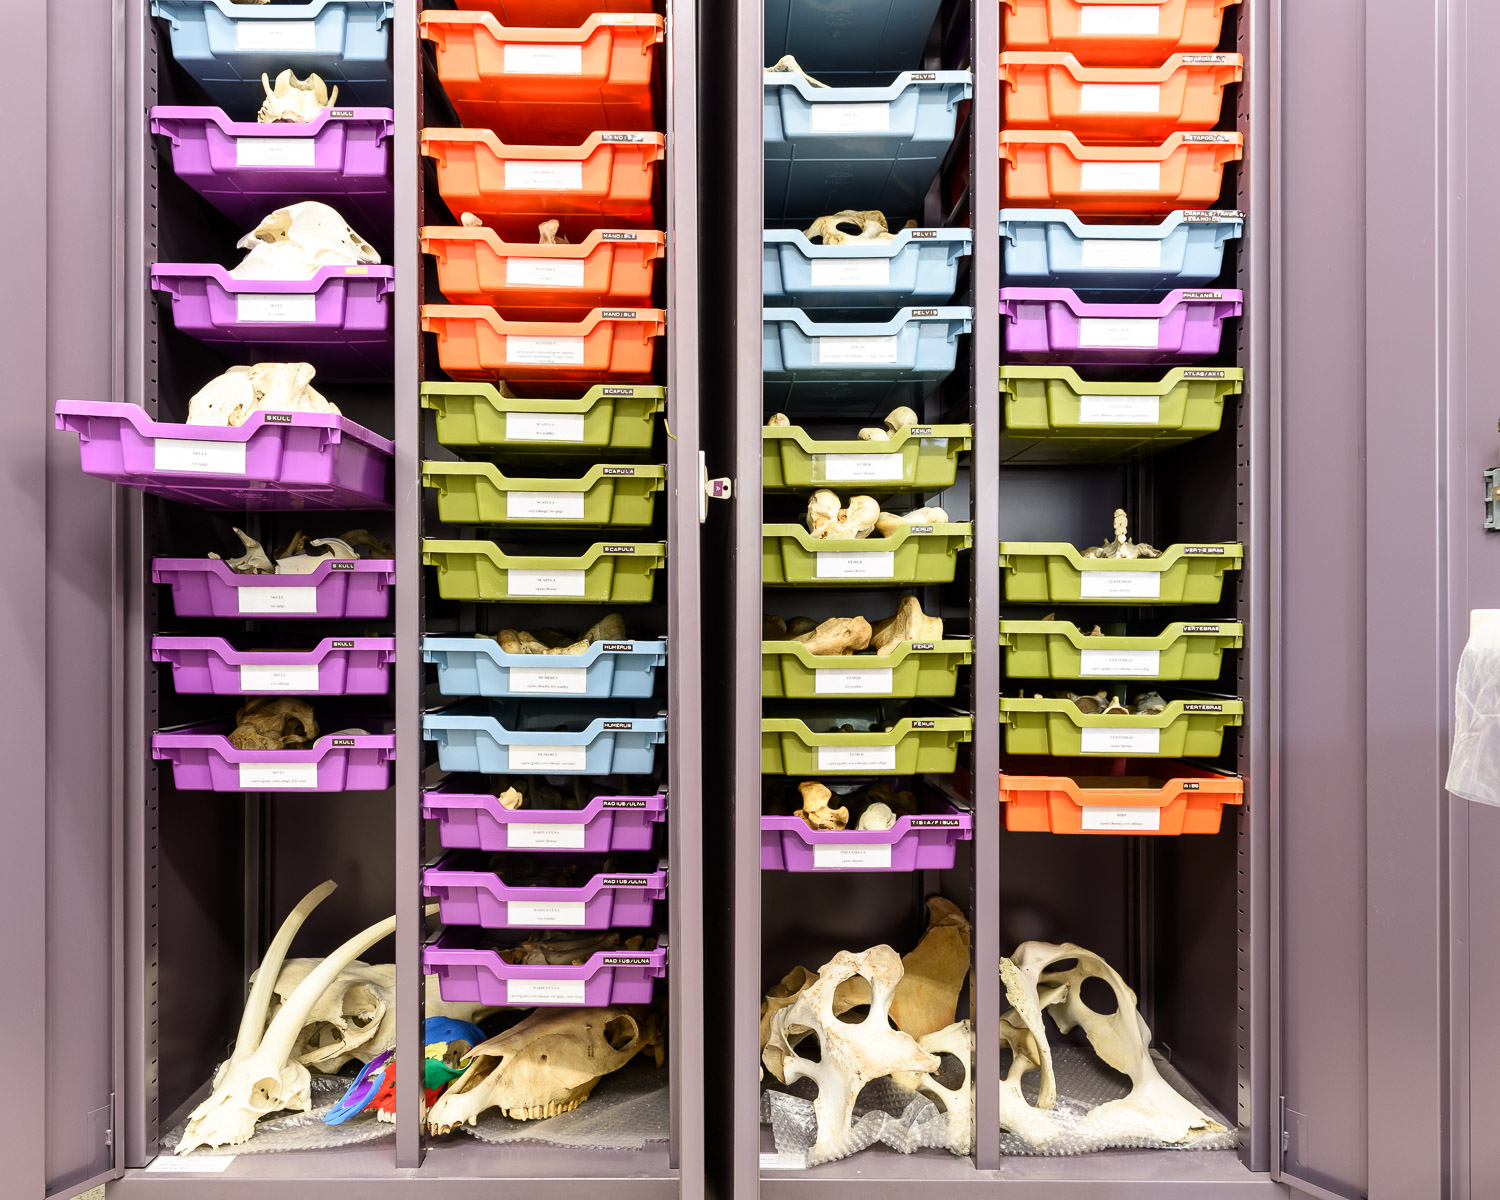 The Fitch Laboratory reference collection of animal bones, hosting modern skeletons of a large number of species, facilitates the visual characterization of the often fragmented bones recovered from excavations